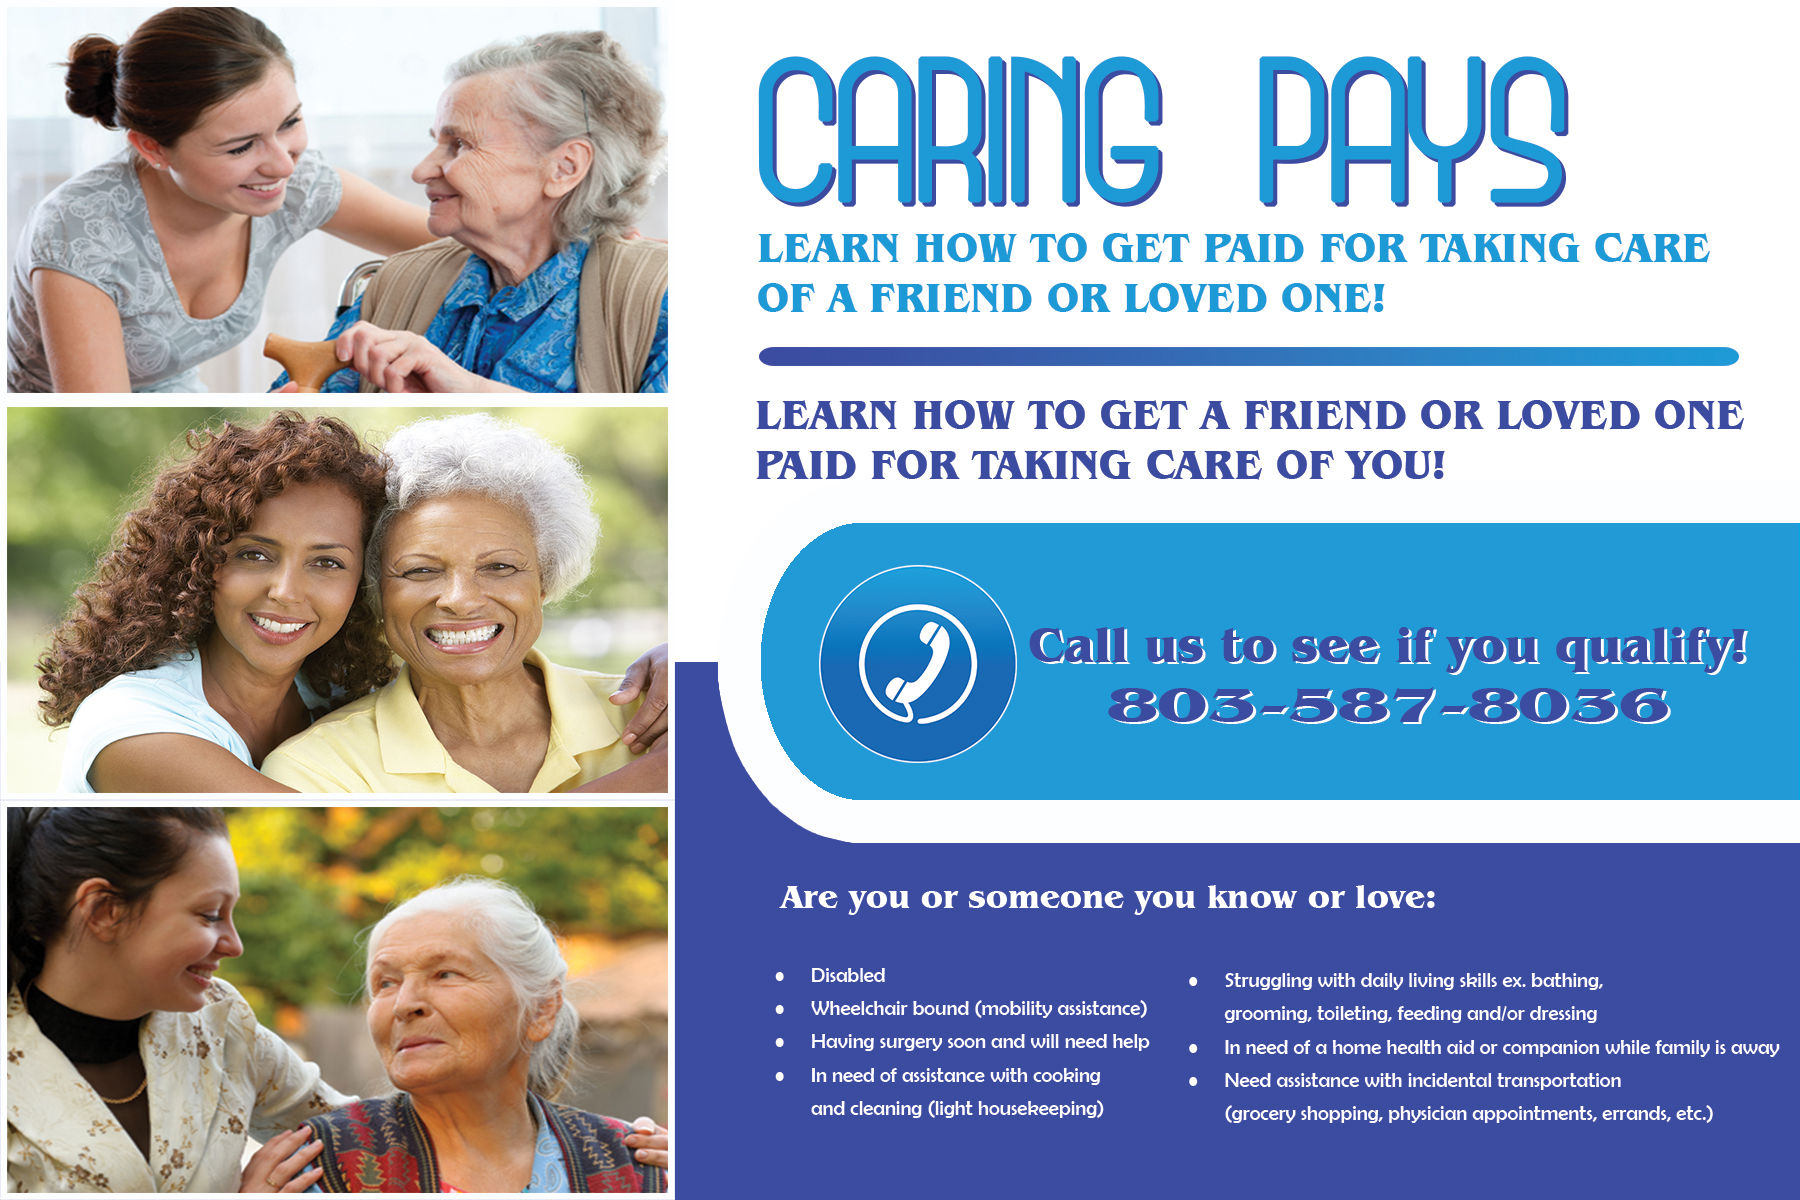 caring-pays